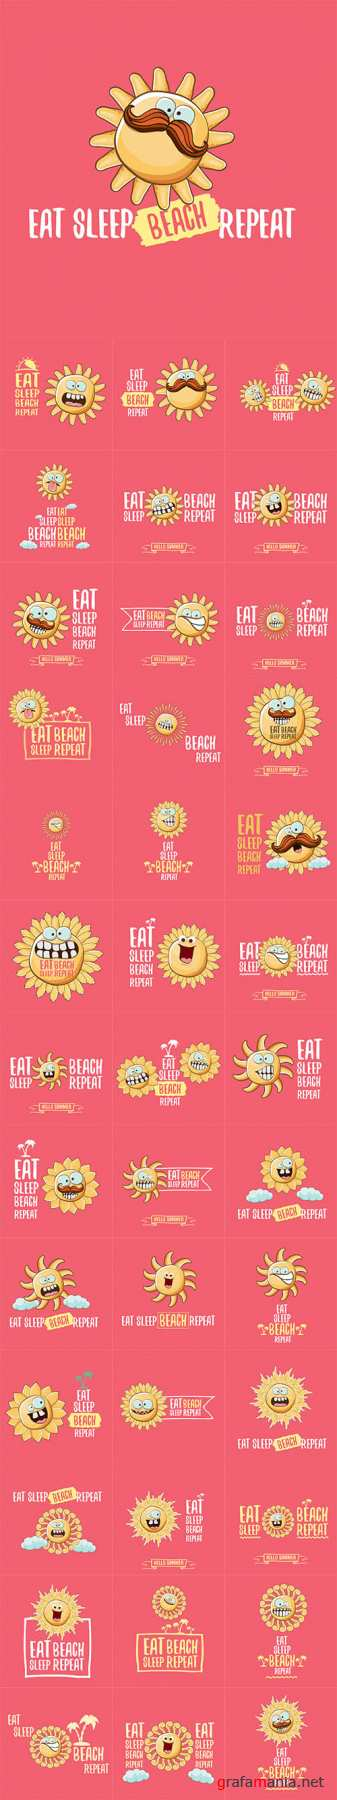 Vector Eat sleep beach repeat concept cartoon illustration or summer poster